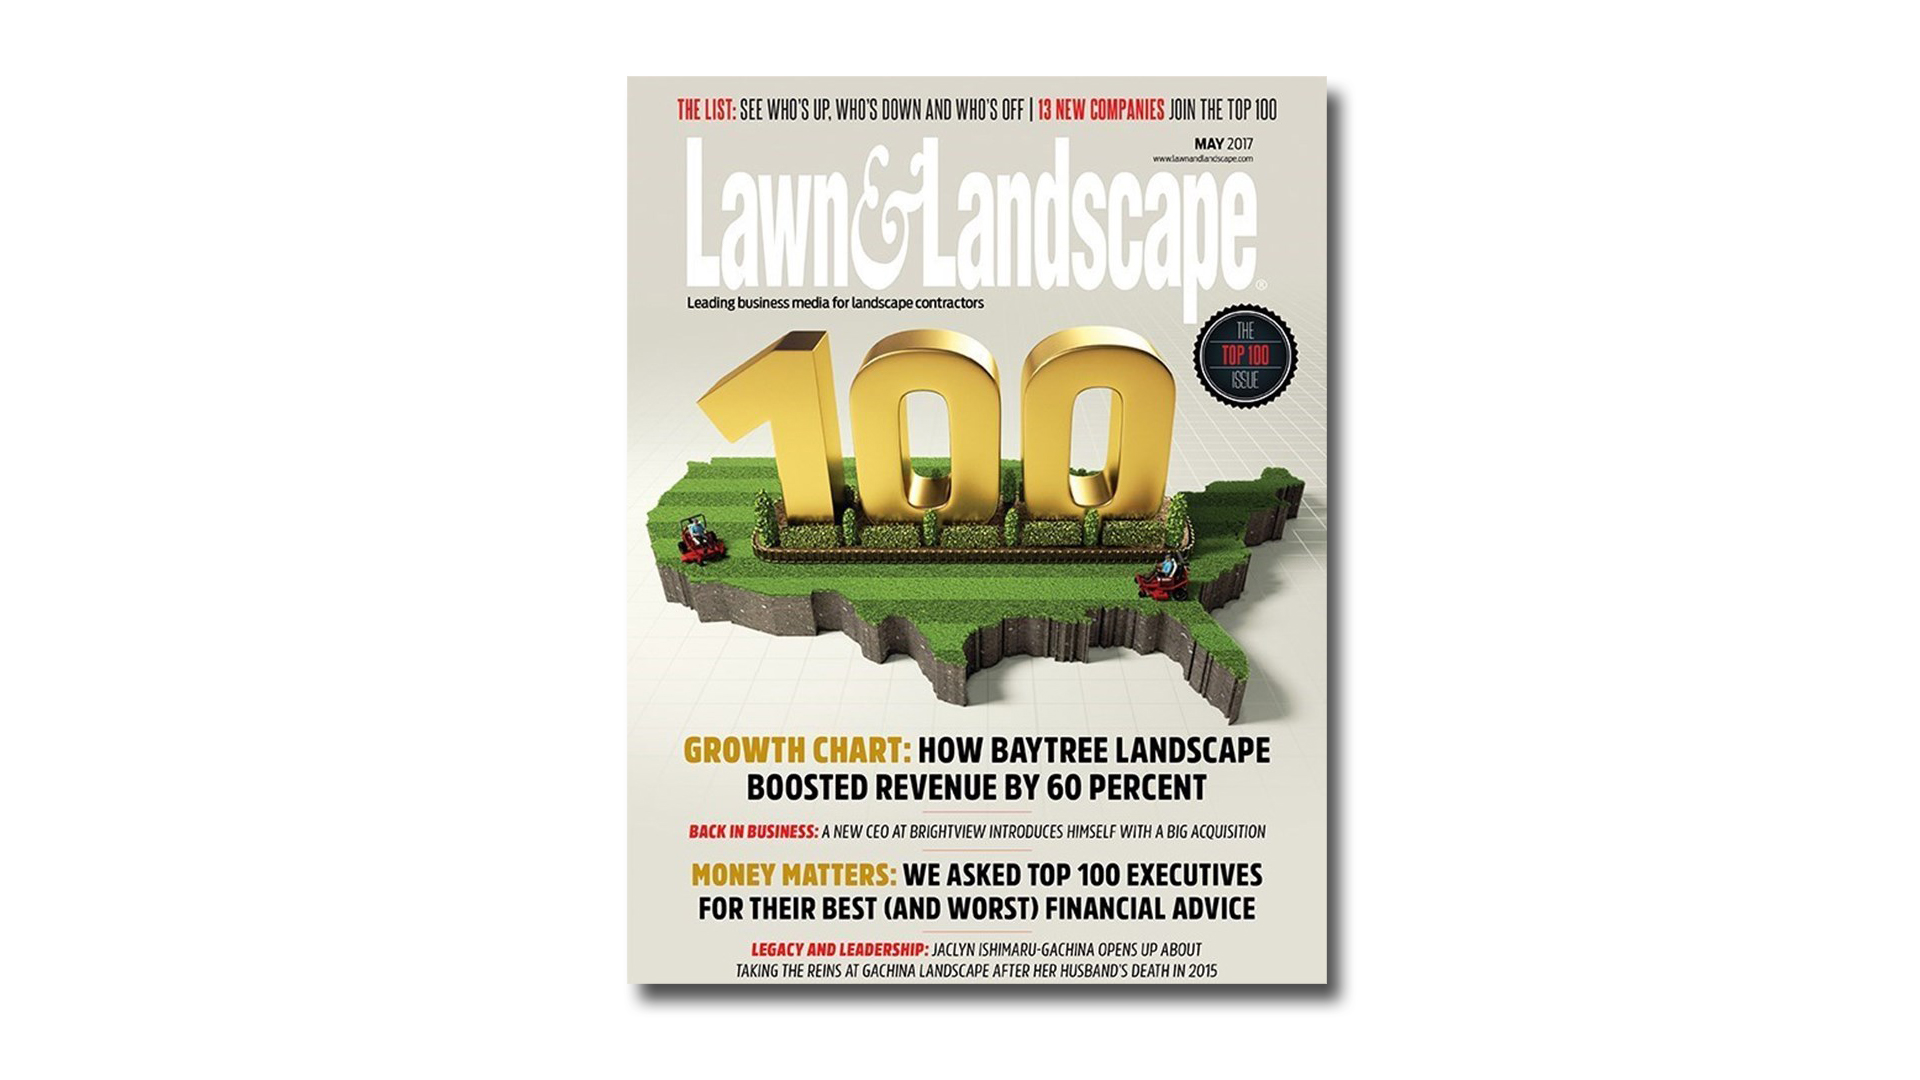 The Top 100 Lawn and Landscape Magazine Illustration